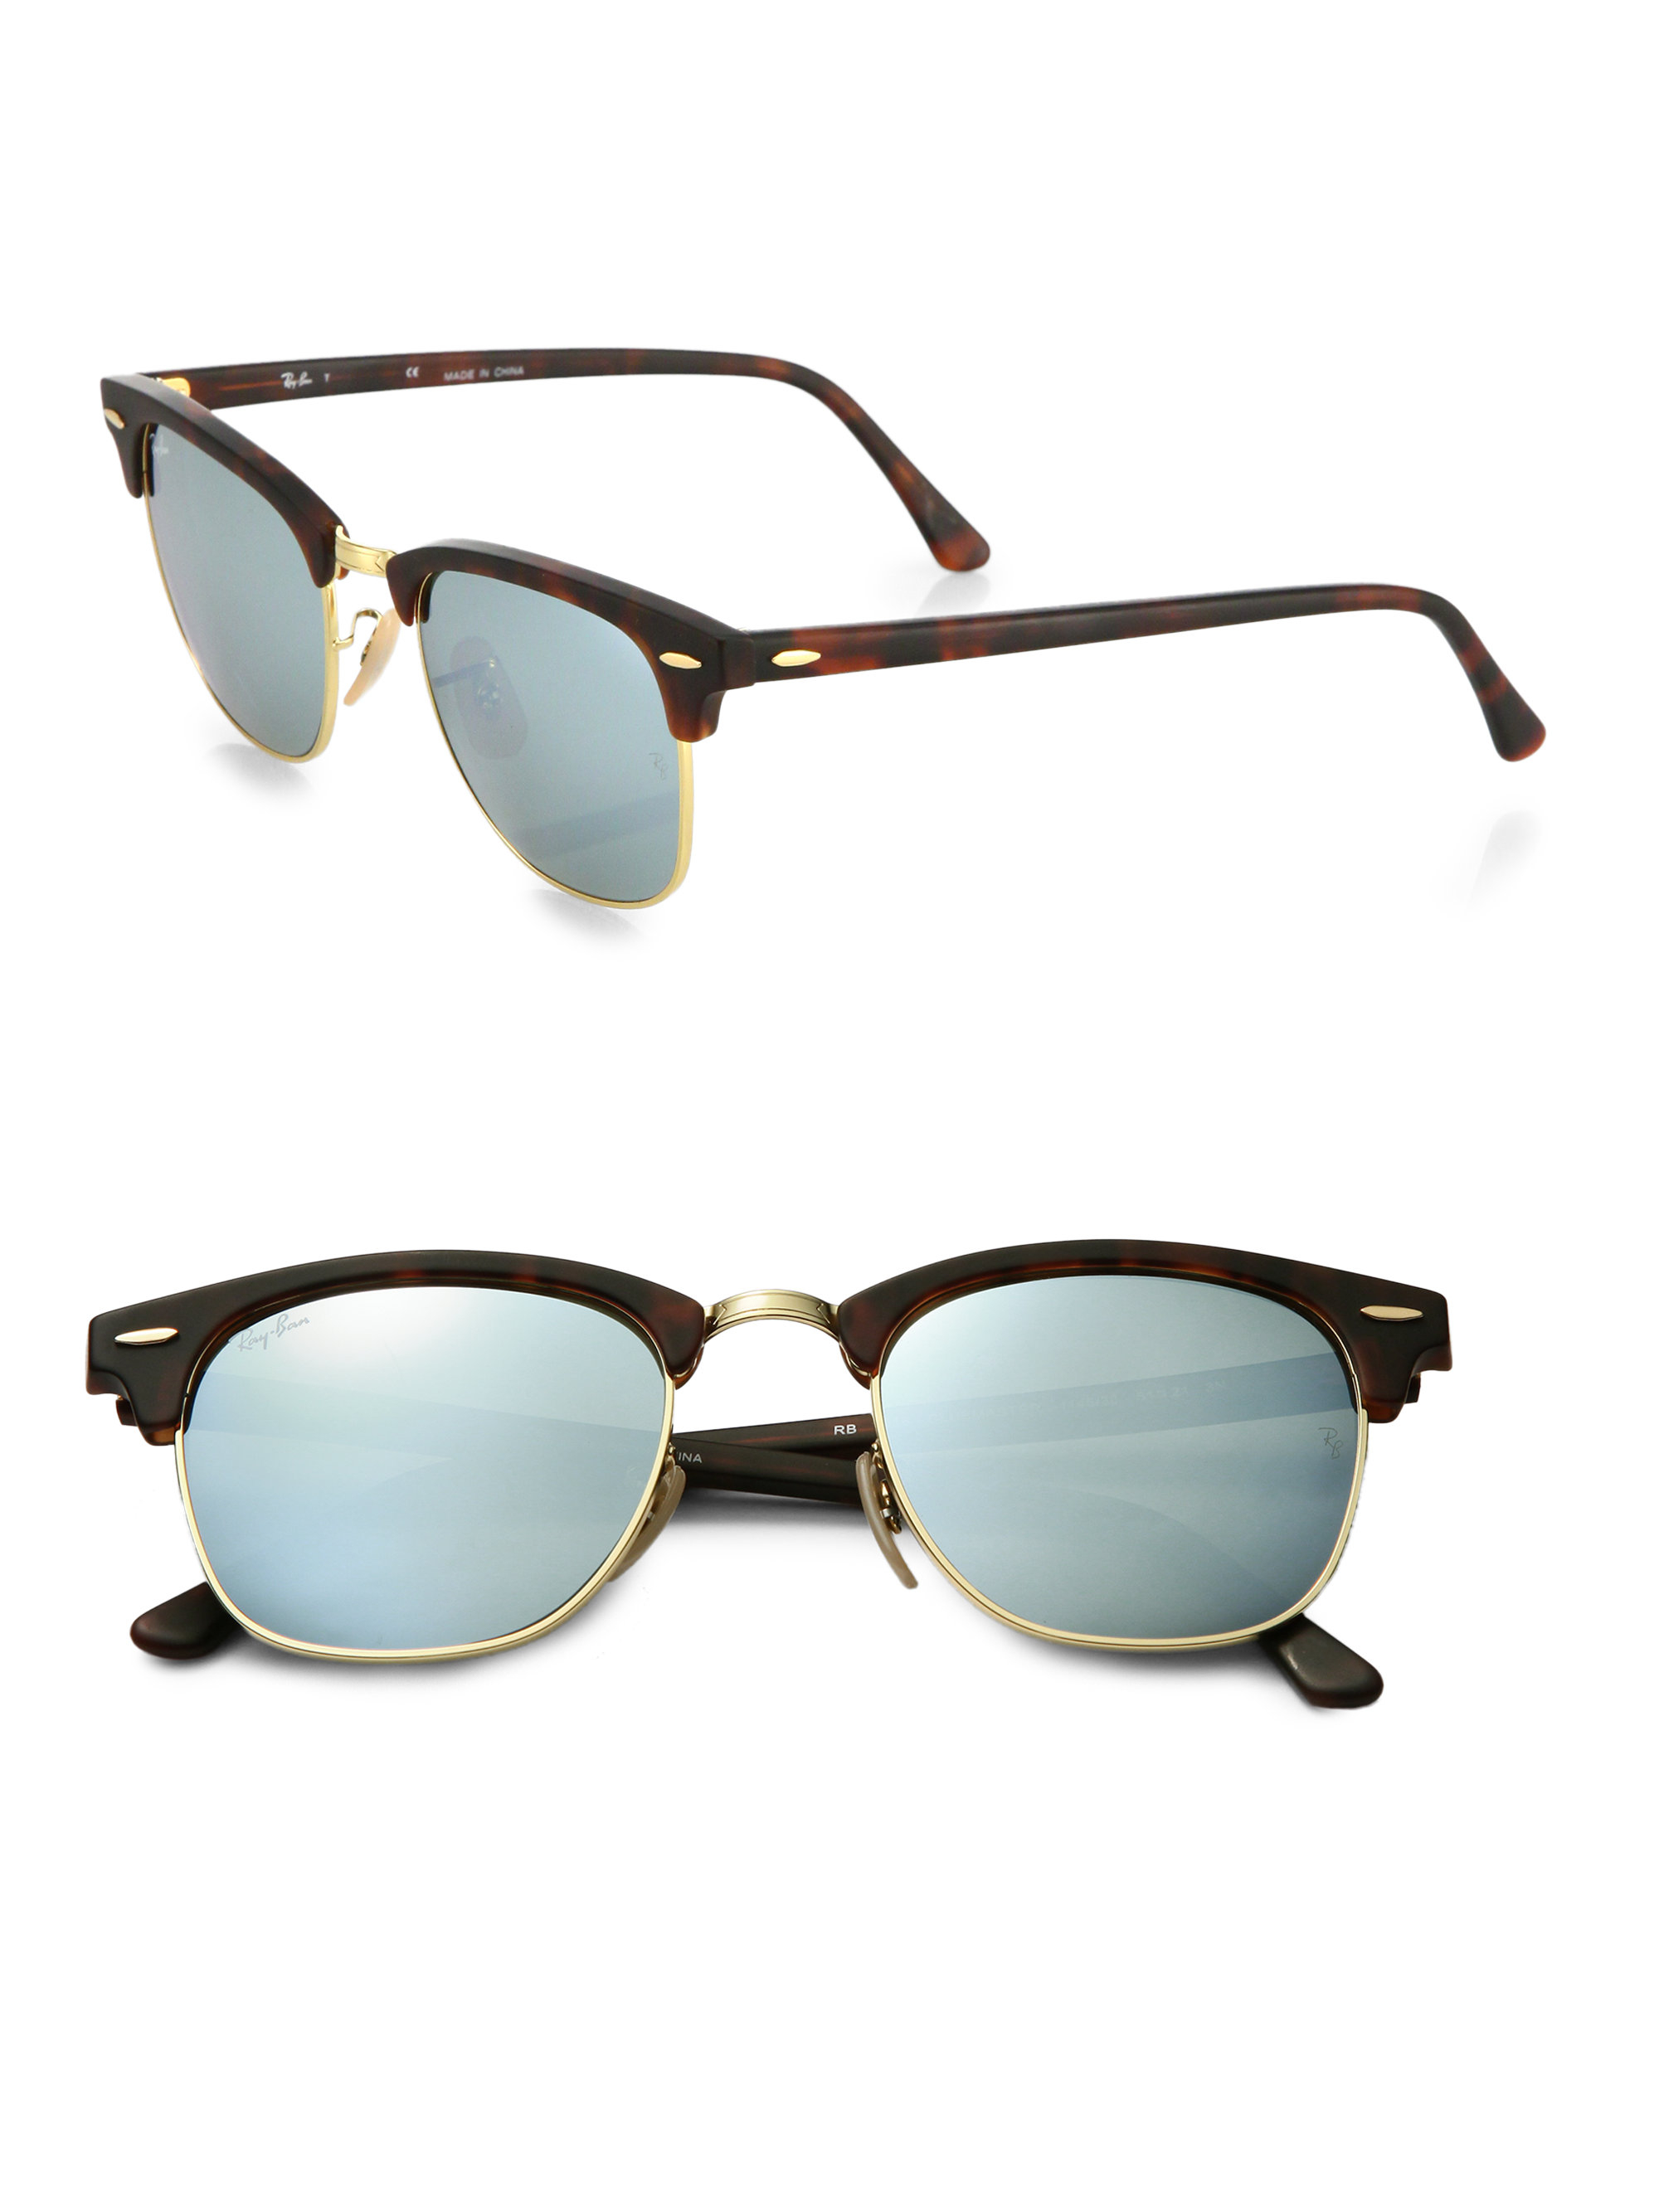 2f260deca1a7 discount ray ban sunglasses flash lenses - Holly's Restaurant and Pub